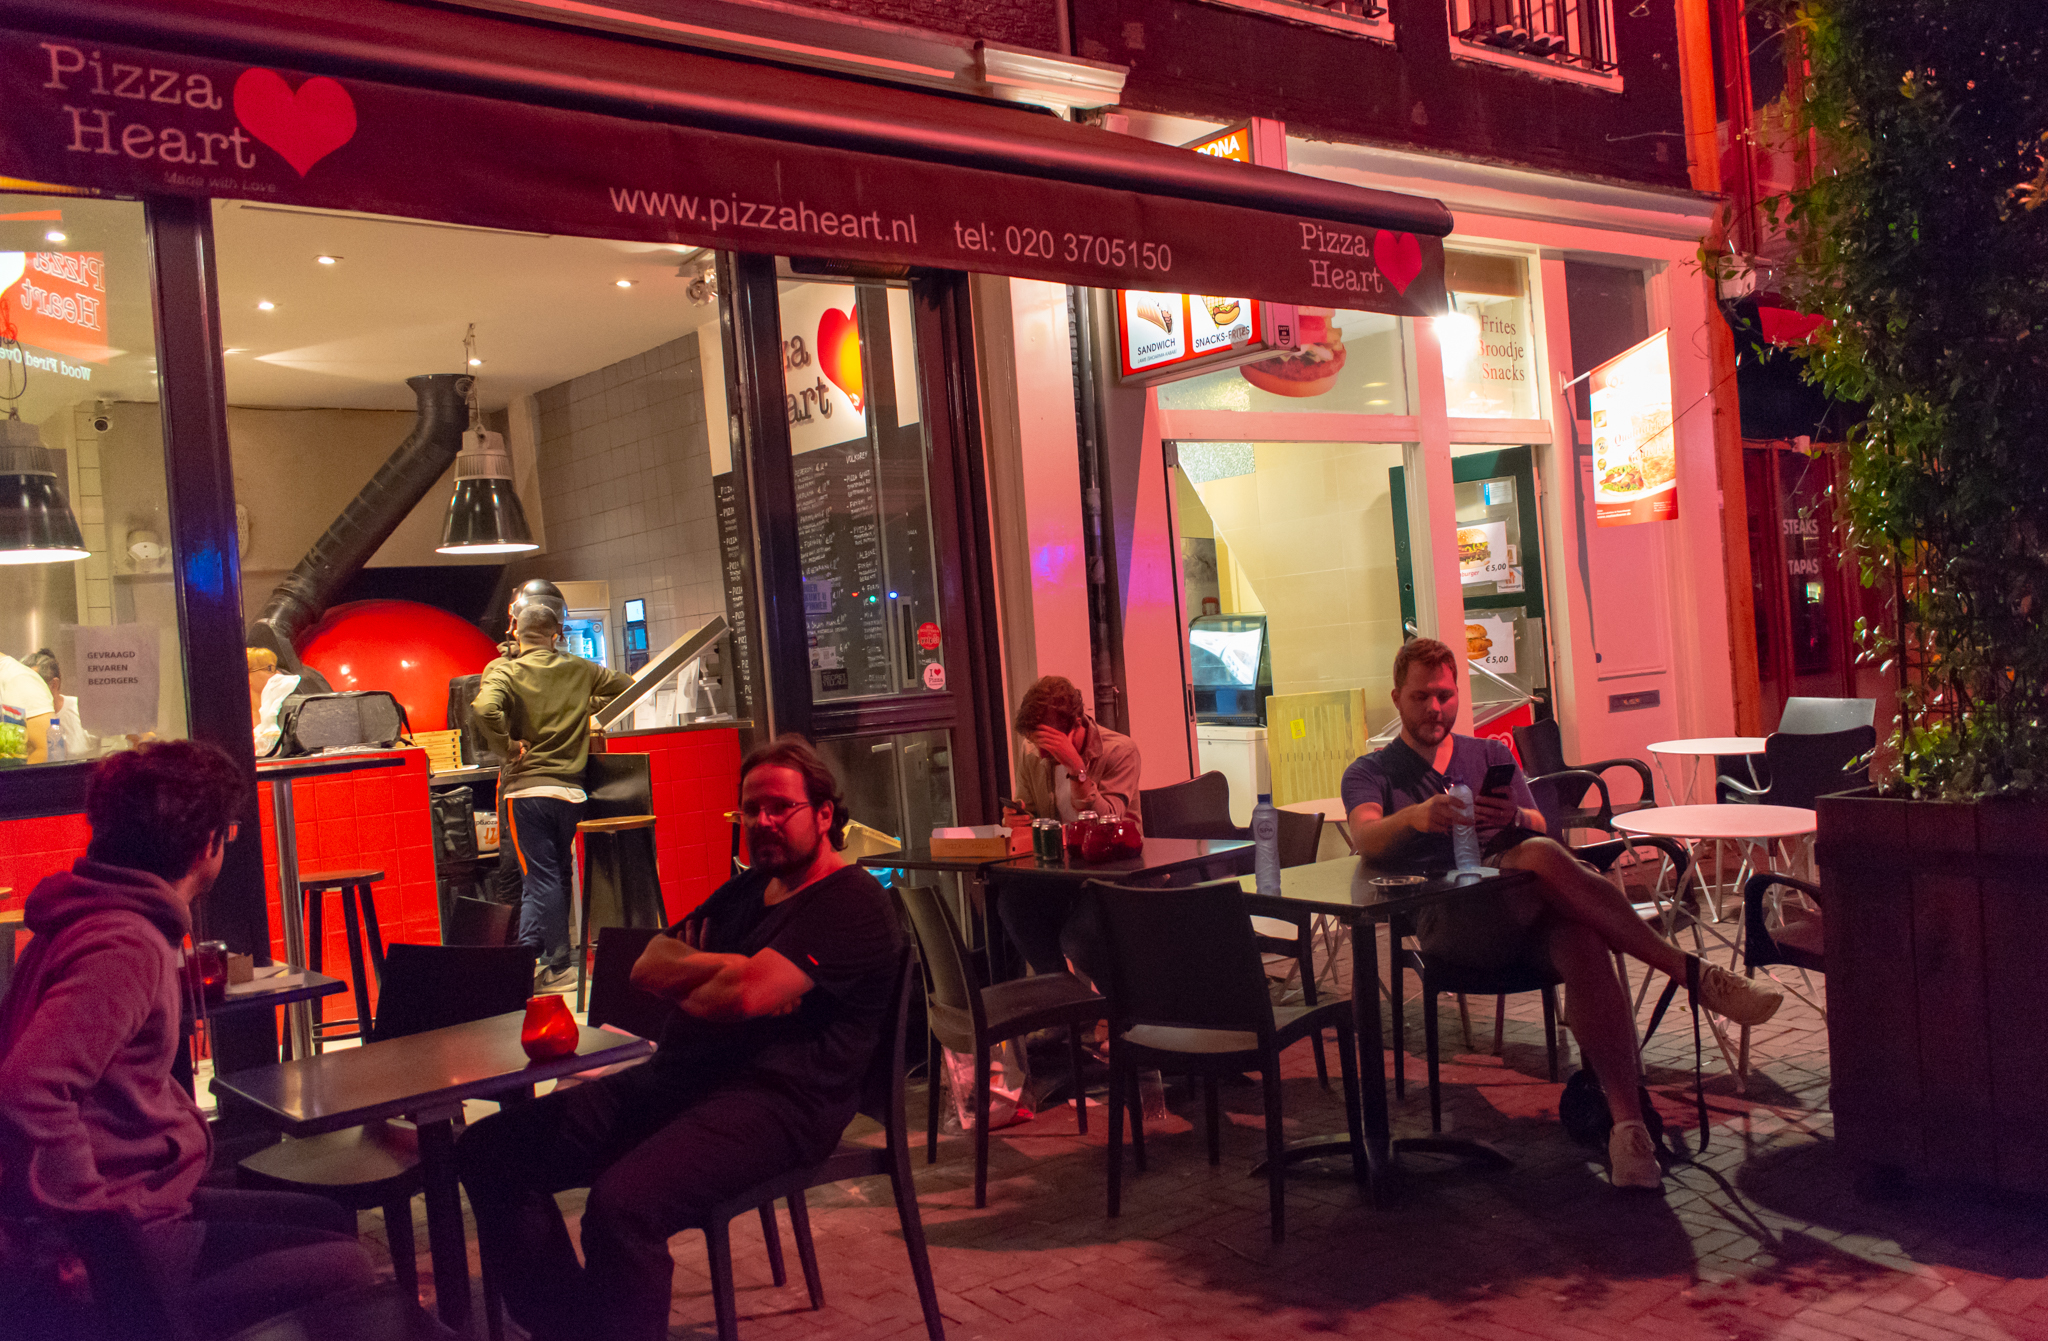 Uprooted-Traveler-Amsterdam-pizza-heart-vegan-guide-netherlands-dinner.jpg